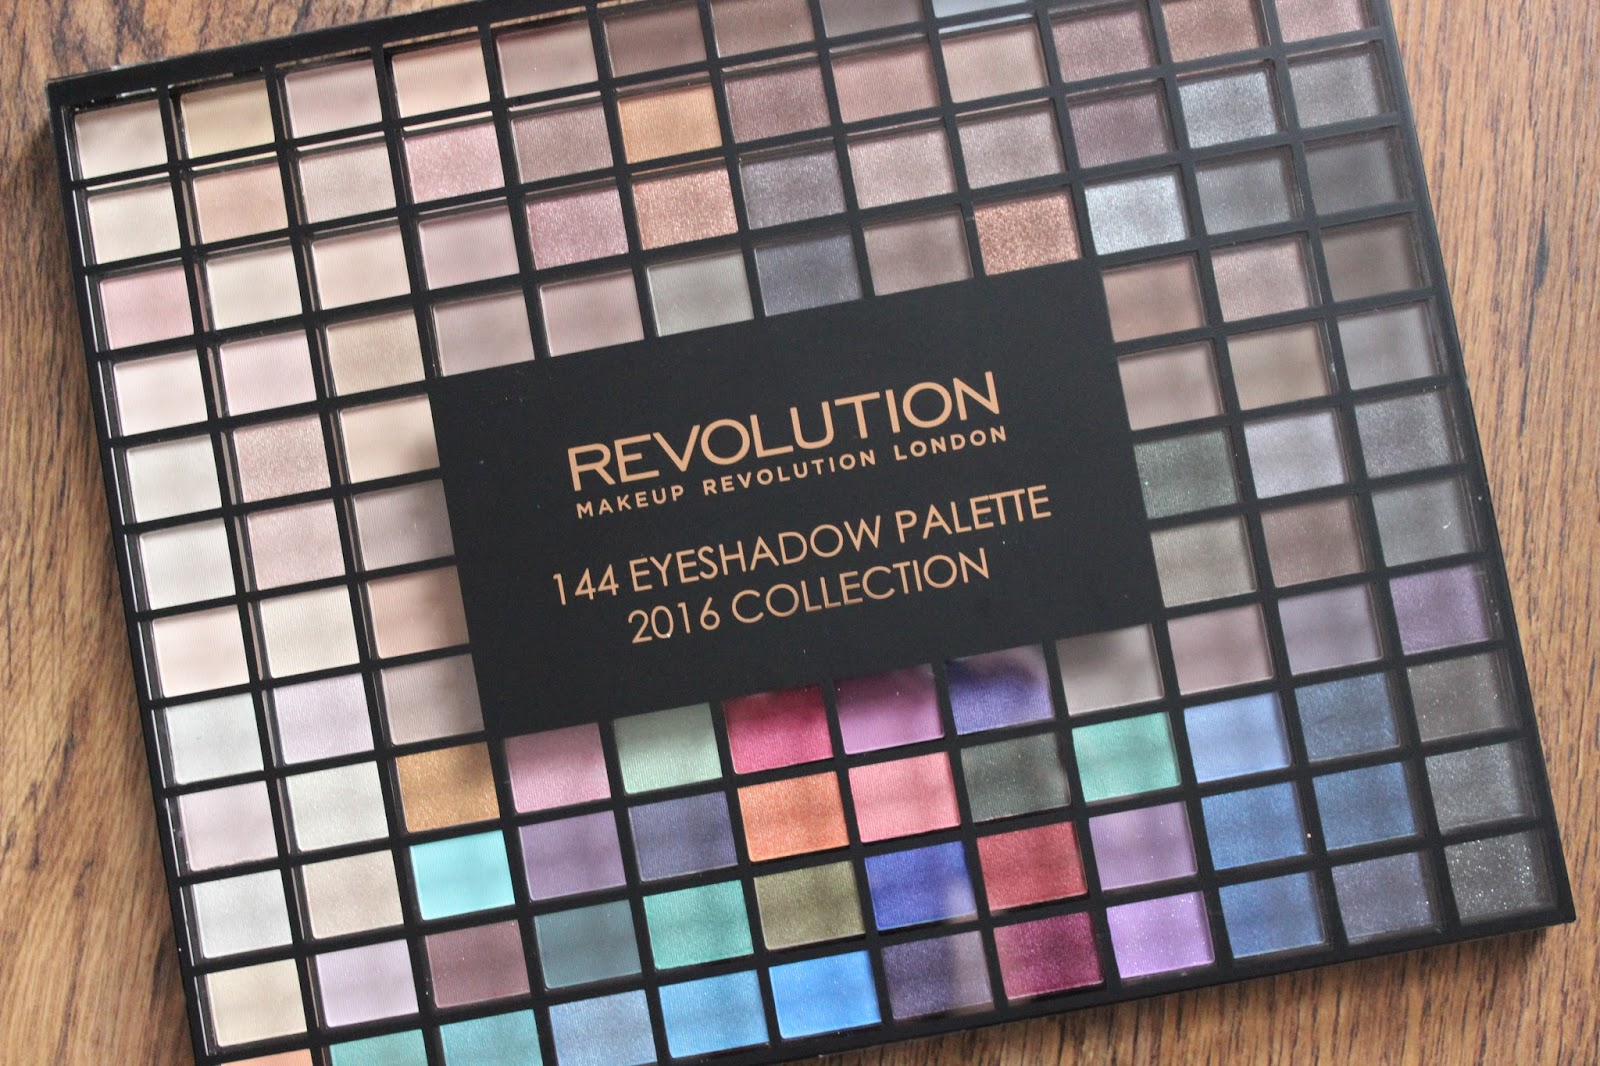 Makeup Revolution - 144 Eyeshadow Palette 2016 Collection